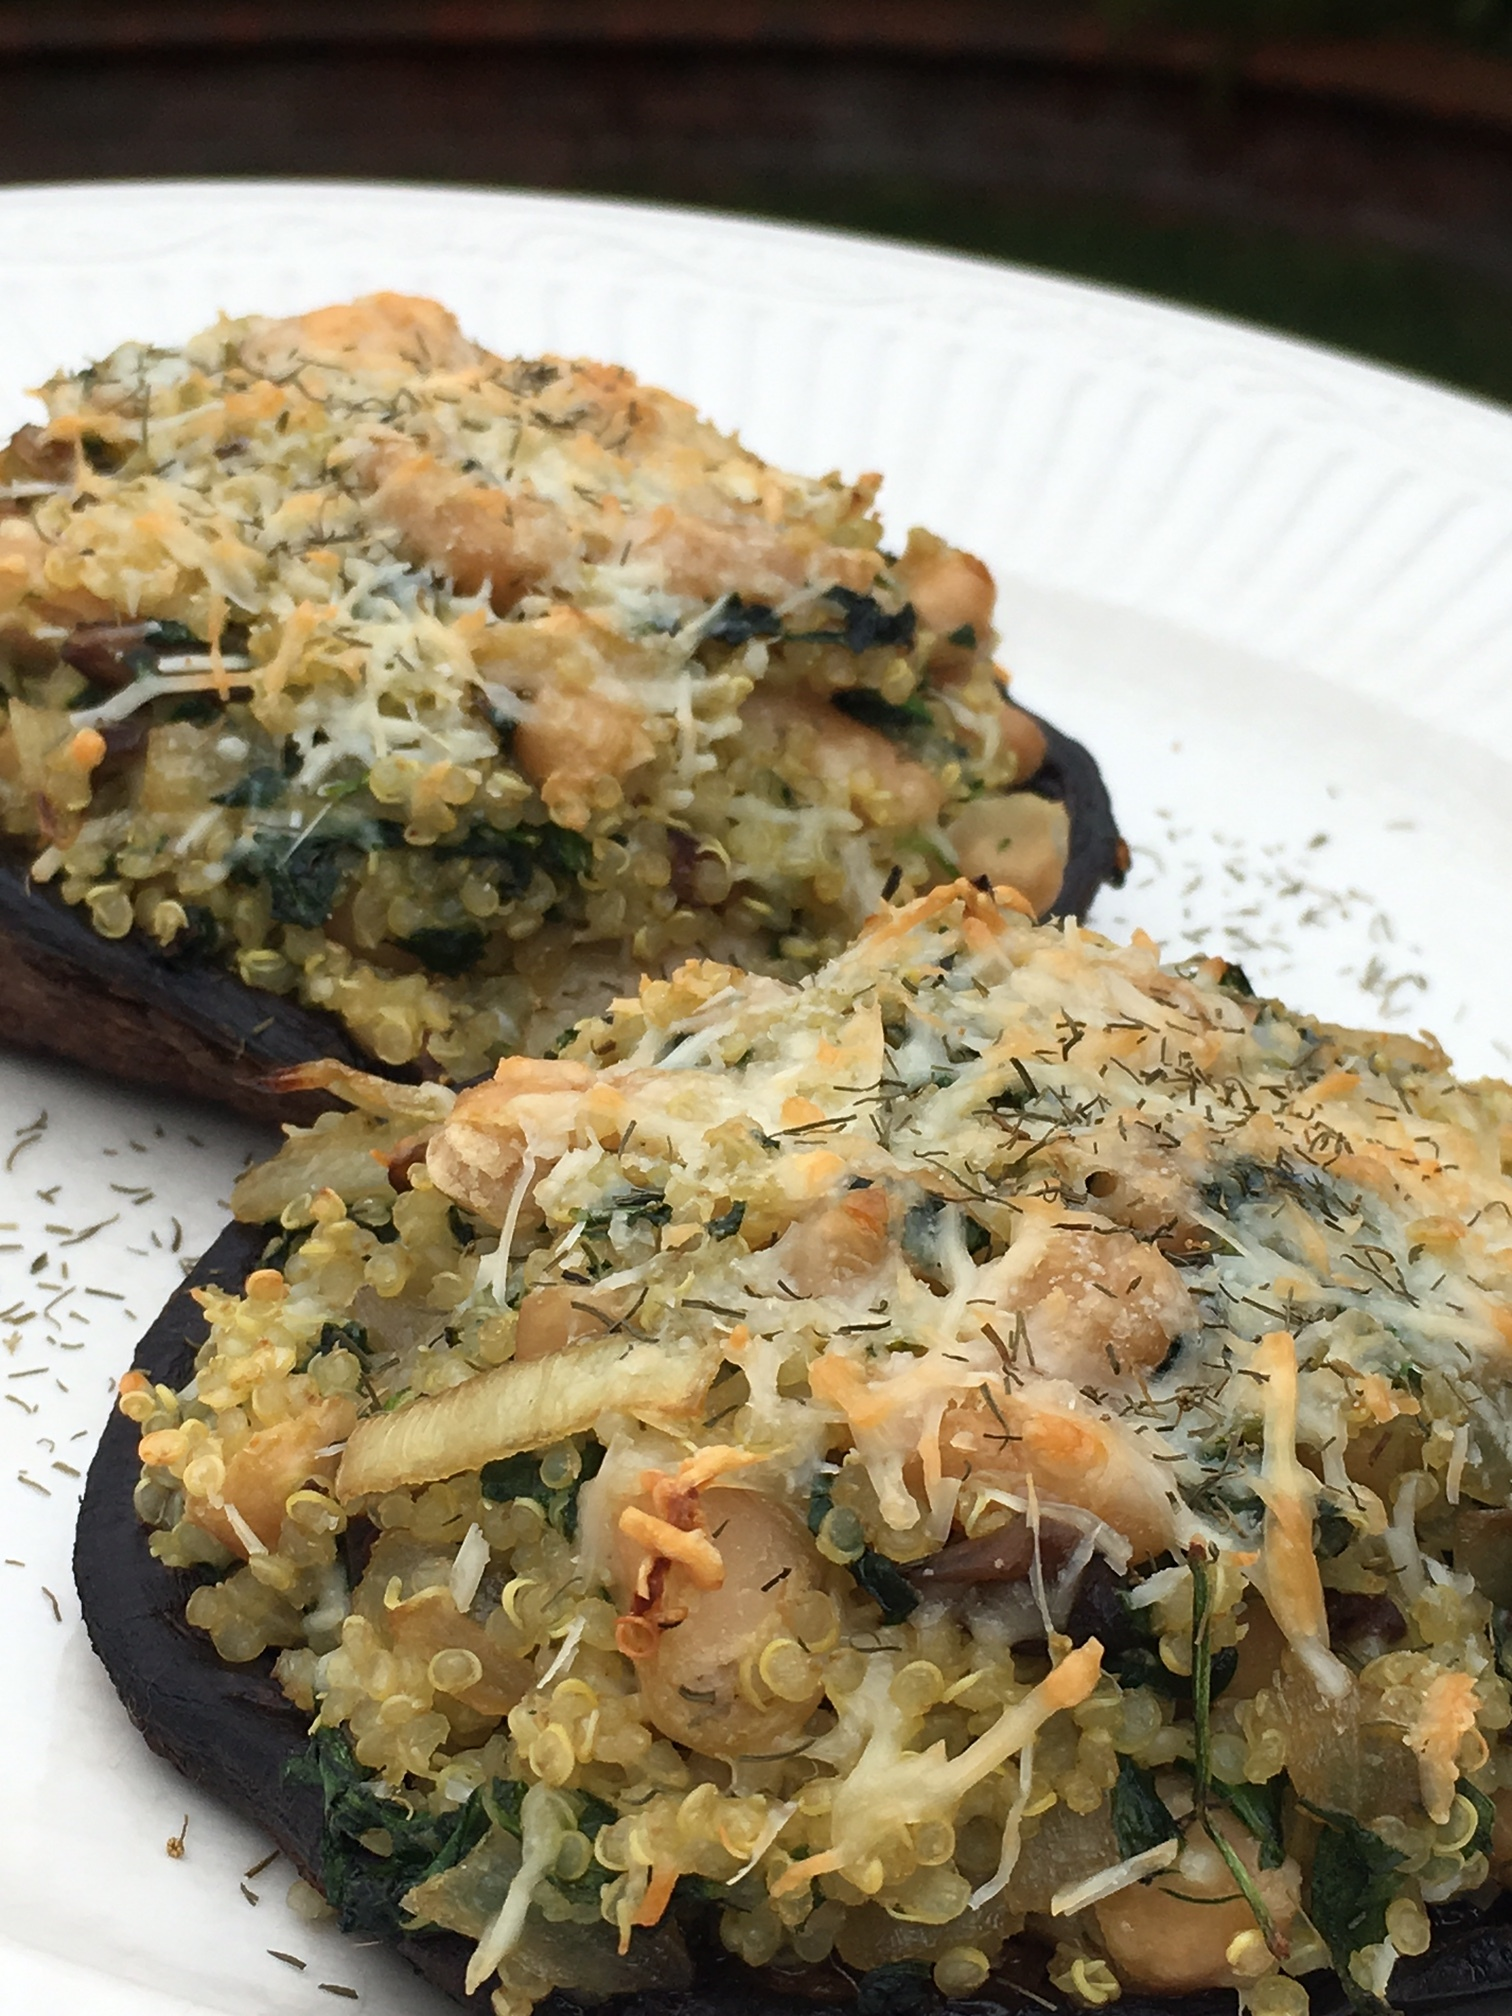 quinoa dilly stuffed mushrooms.JPG